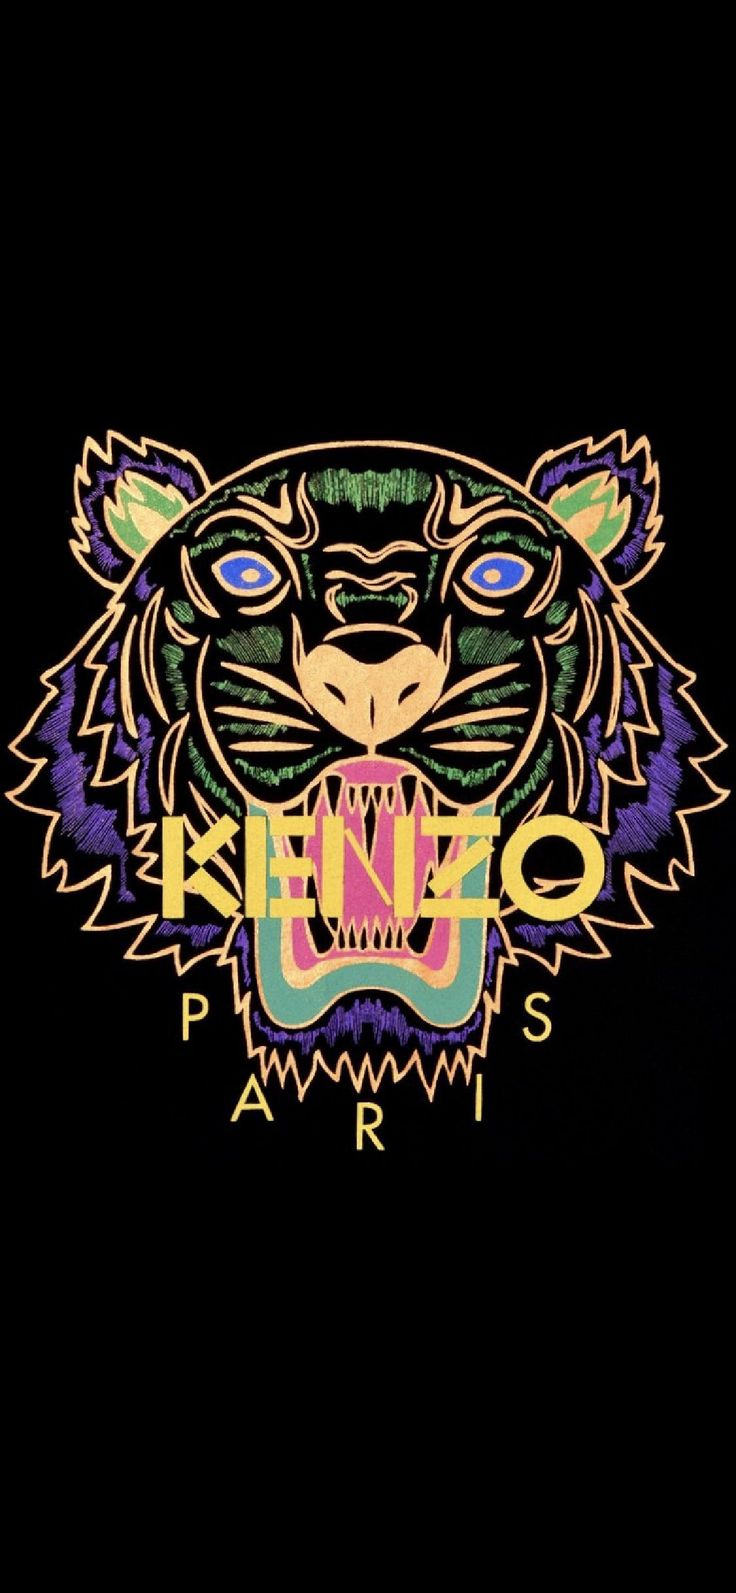 Kenzo Tiger iPhone wallpaper di 2020 Wallpaper ponsel